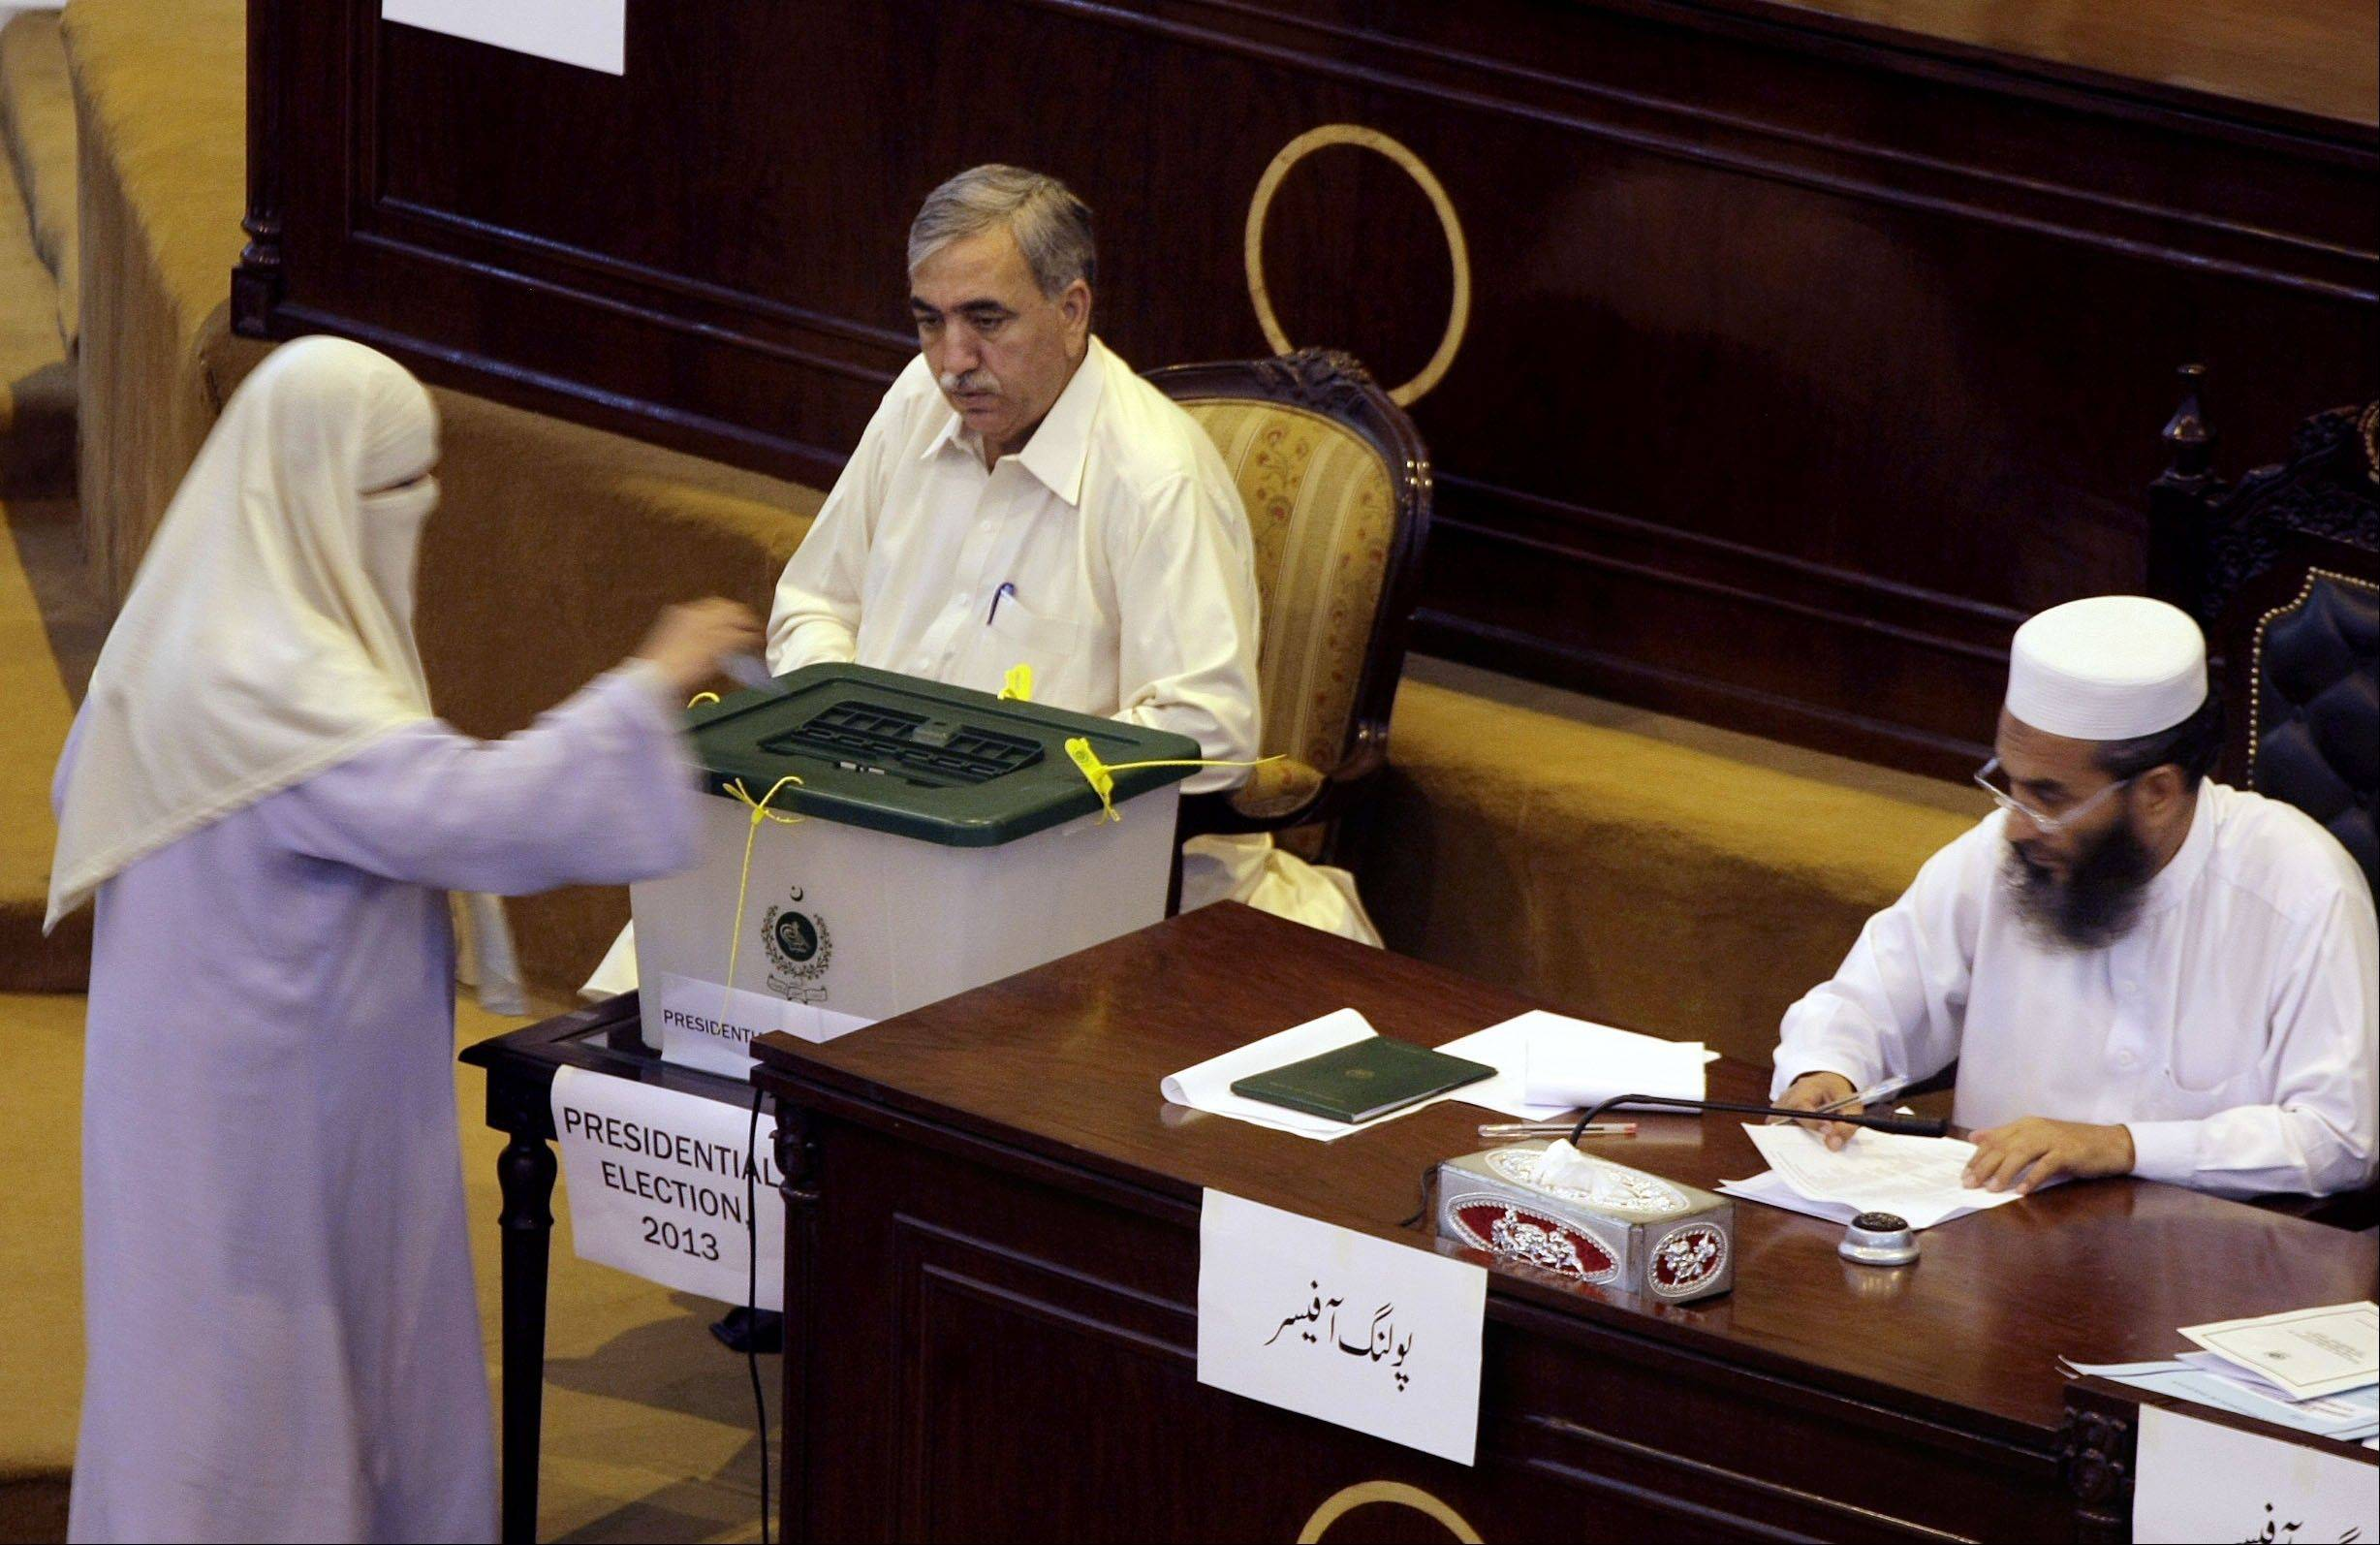 A Pakistani lawmaker casts her vote for the presidential election at the Provincial assembly in Peshawar, Pakistan, Tuesday, July 30, 2013. Pakistani lawmakers elected Mamnoon Hussain, a textile businessman, as the country�s next president.